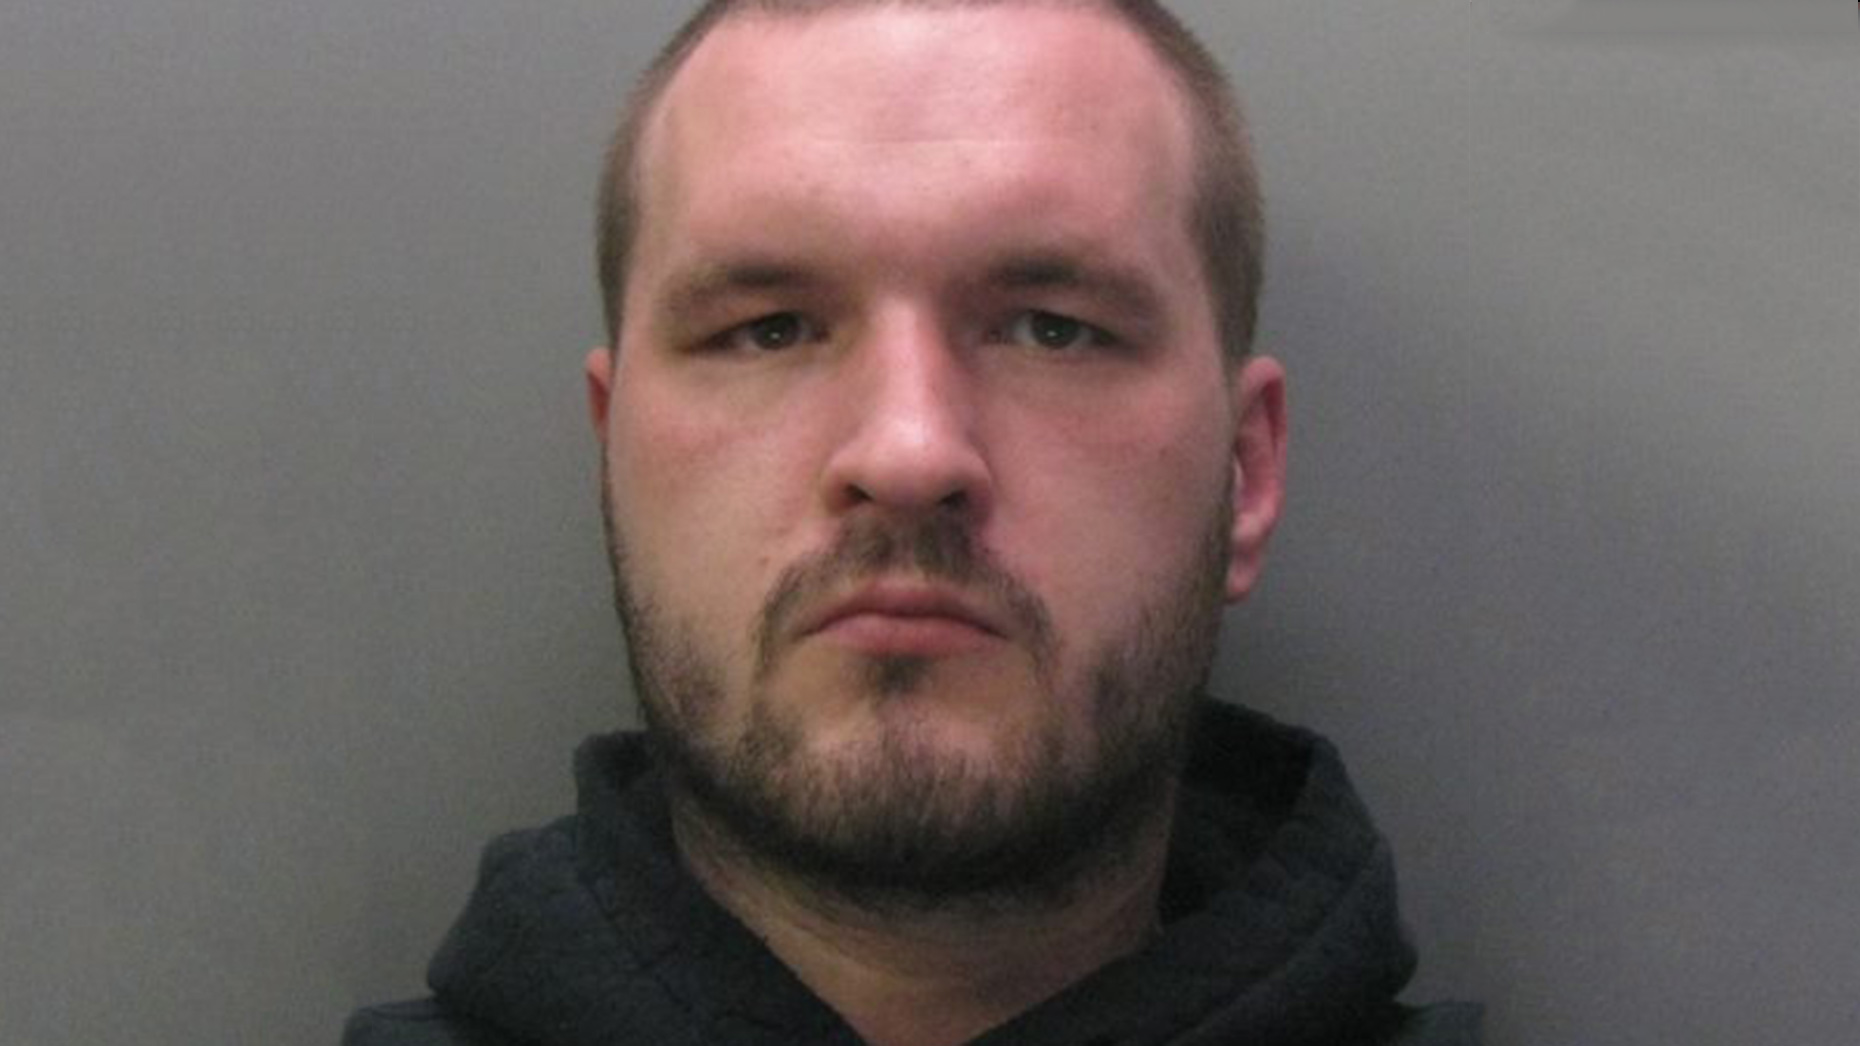 Sick lorry driver groomed young boys during sleepovers before ...